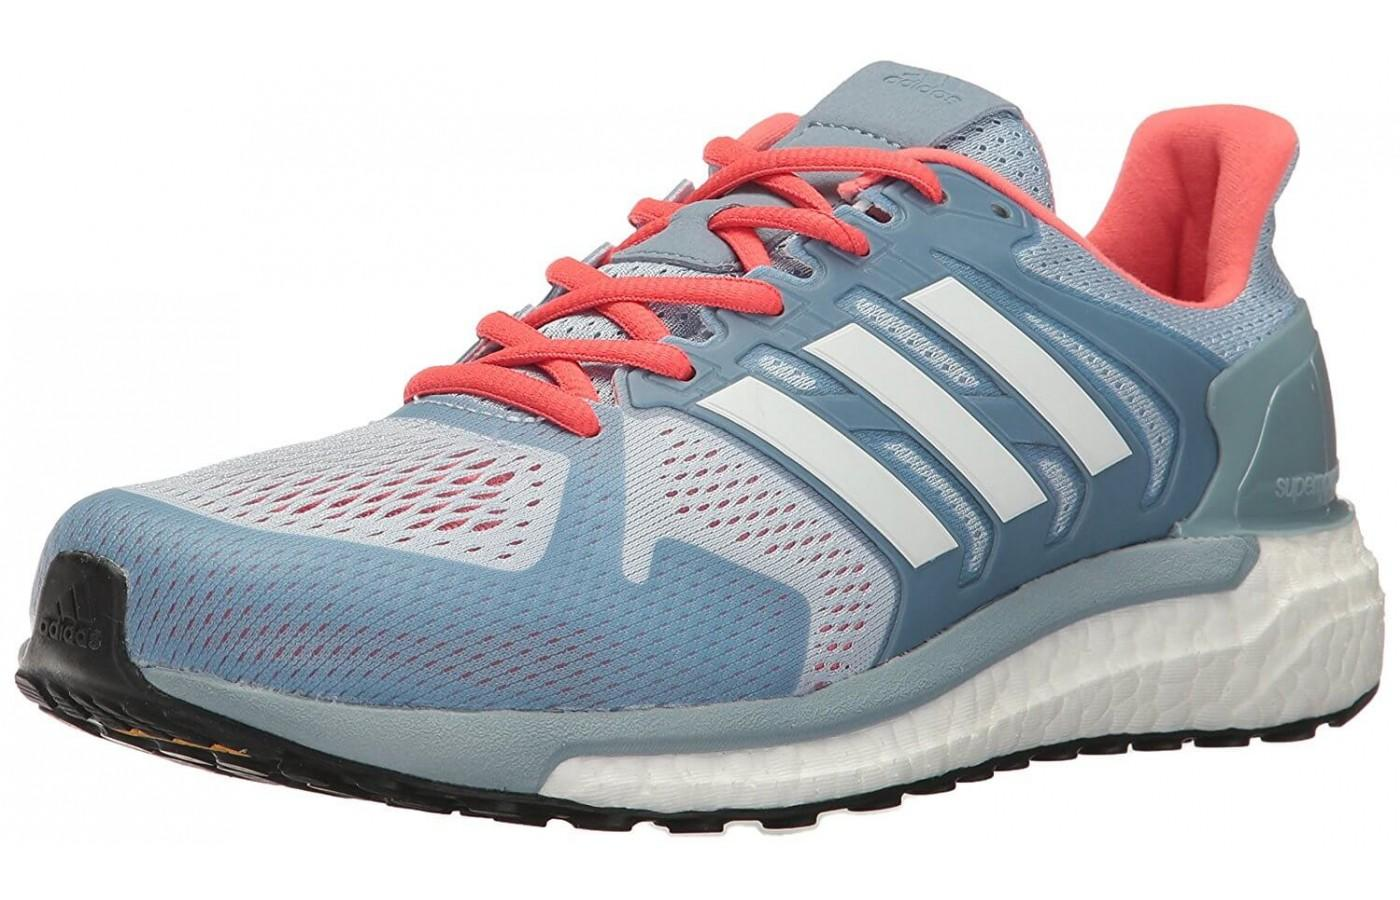 fa747050c8b The Adidas Supernova ST is a stability shoe that represents a redesign of  the Sequence 9 ...